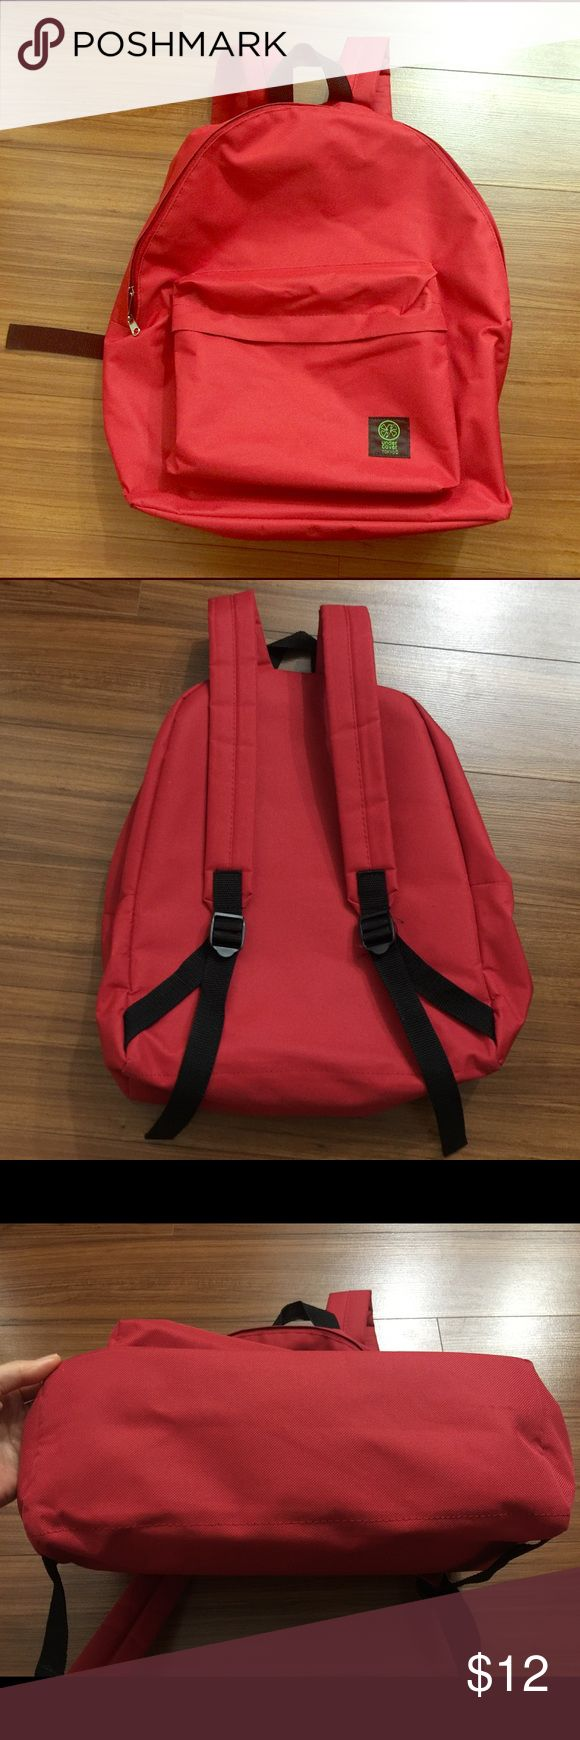 Red backpack 🎒 Red backpack 🎒 got it as a gift, used it very clean. very light, everyday backpack! see pictures!! Bags Backpacks